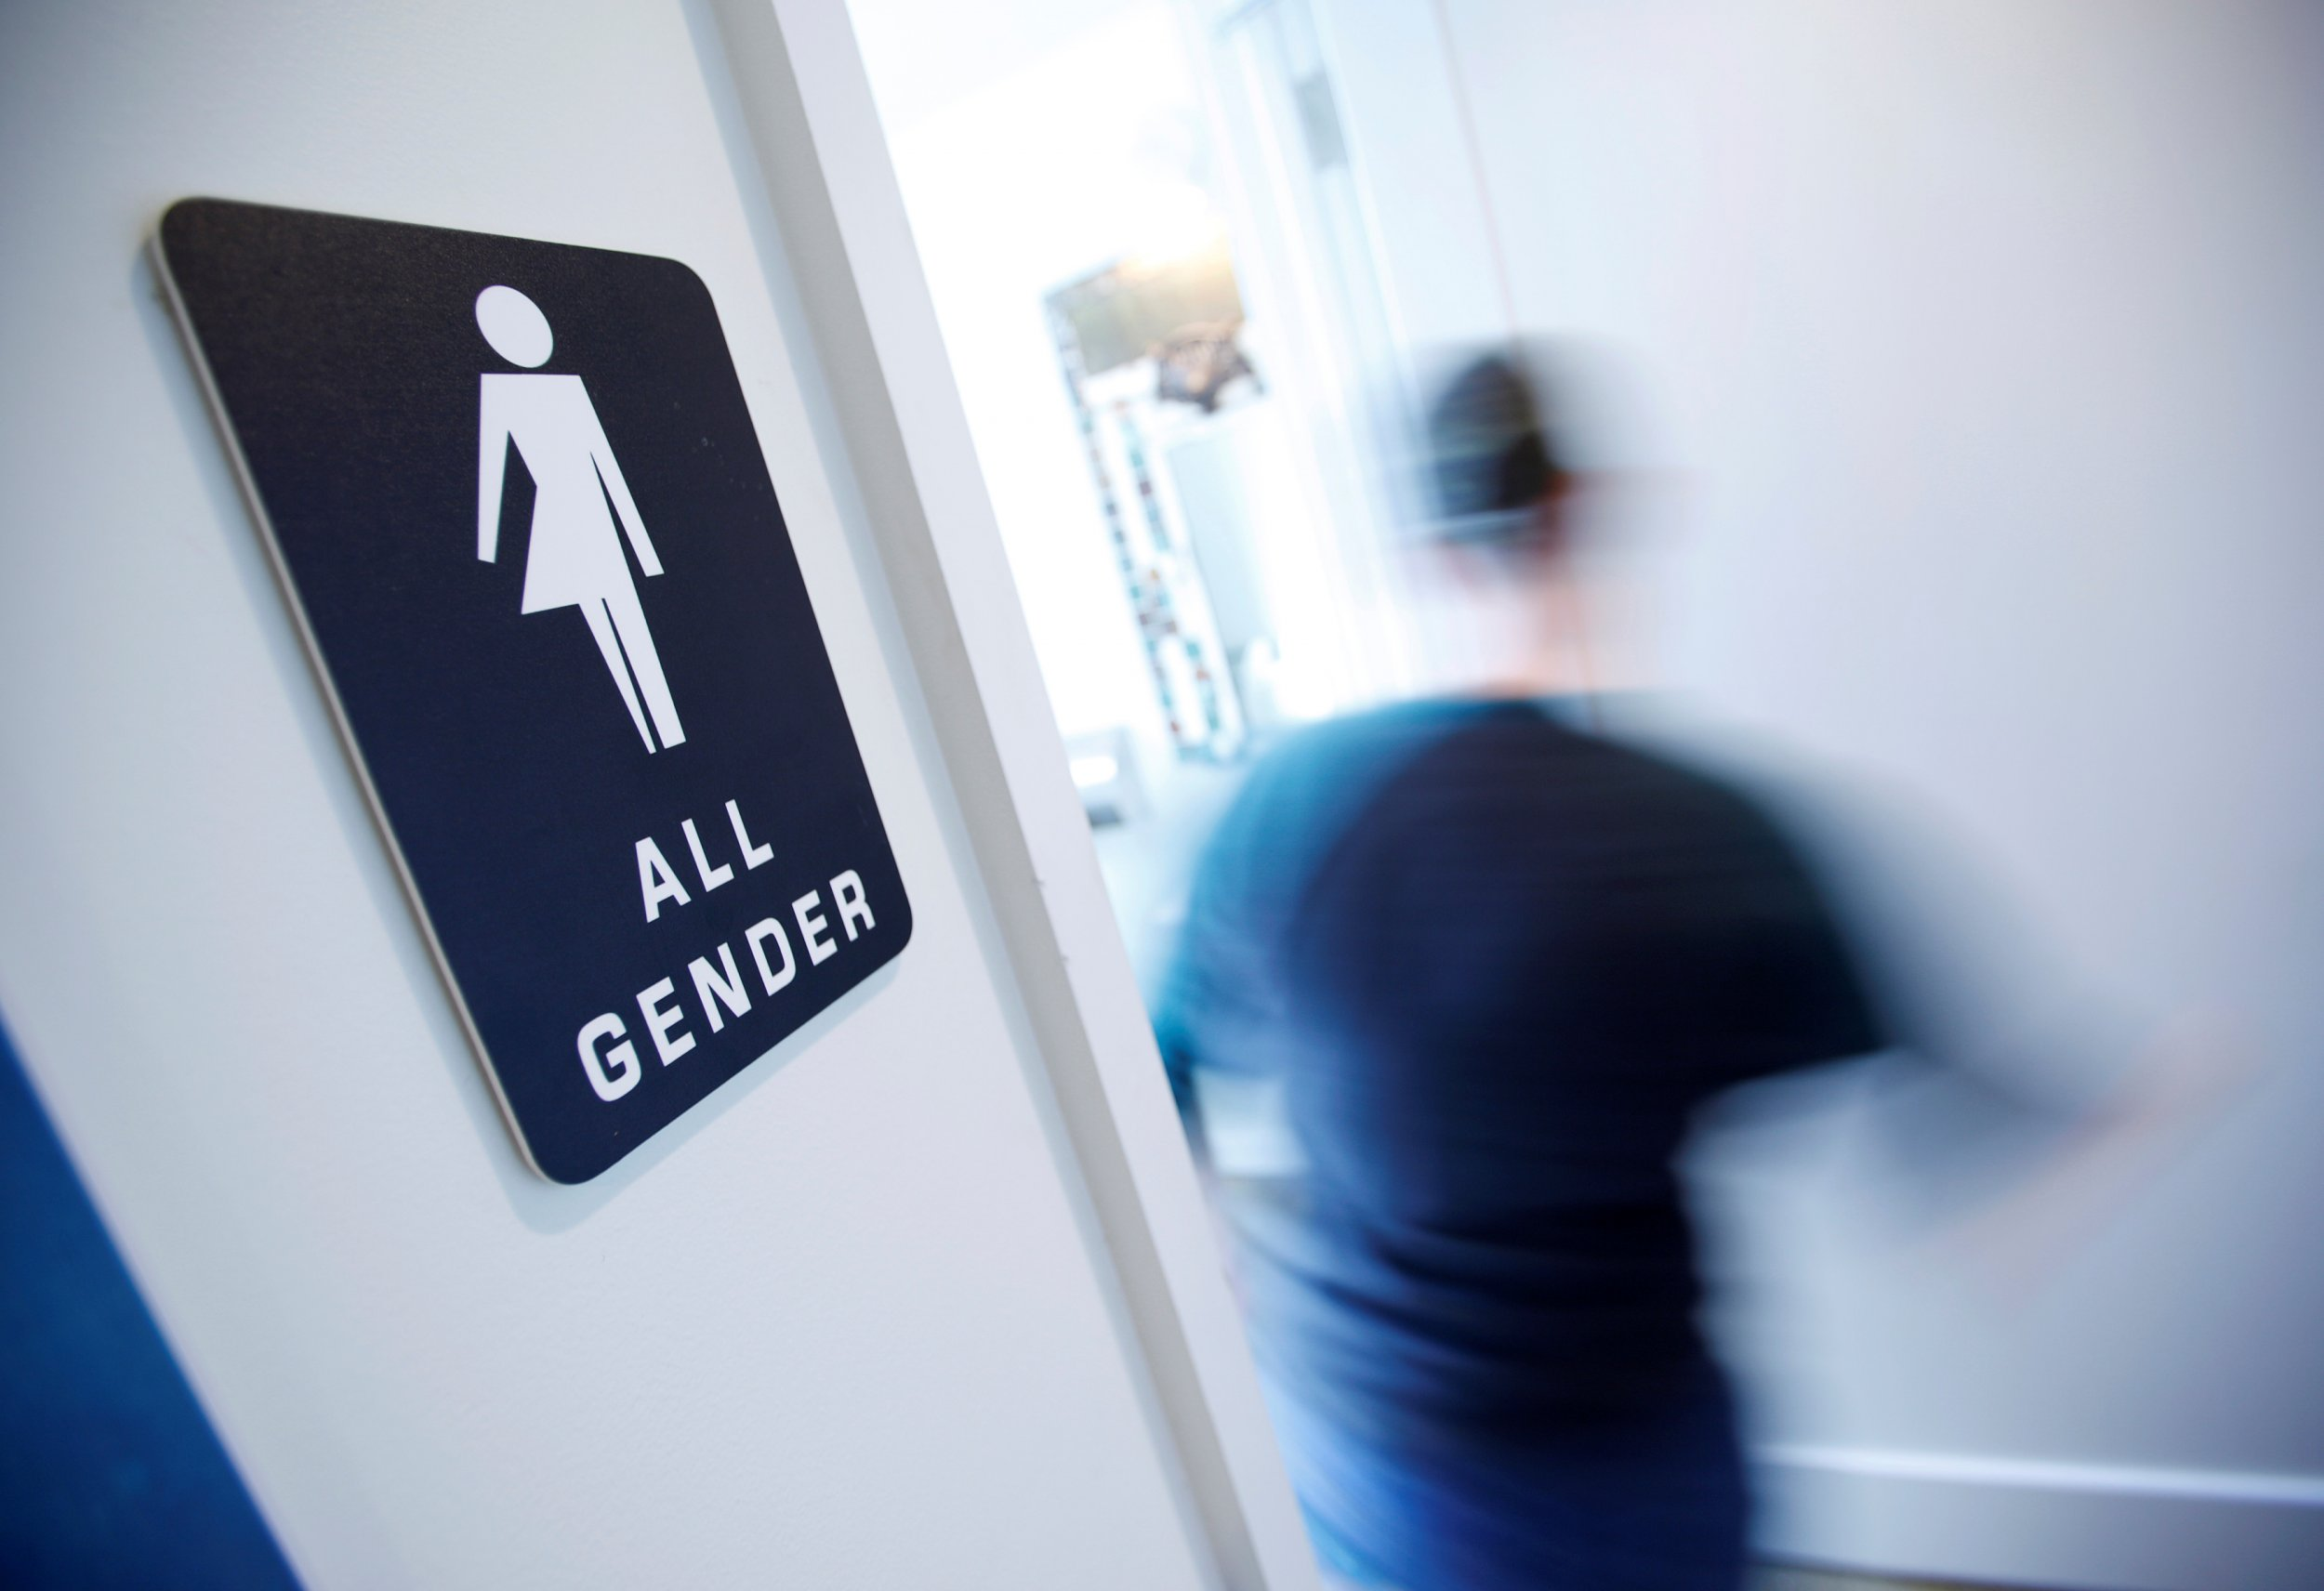 north carolina debates repeal of transgender bathroom law